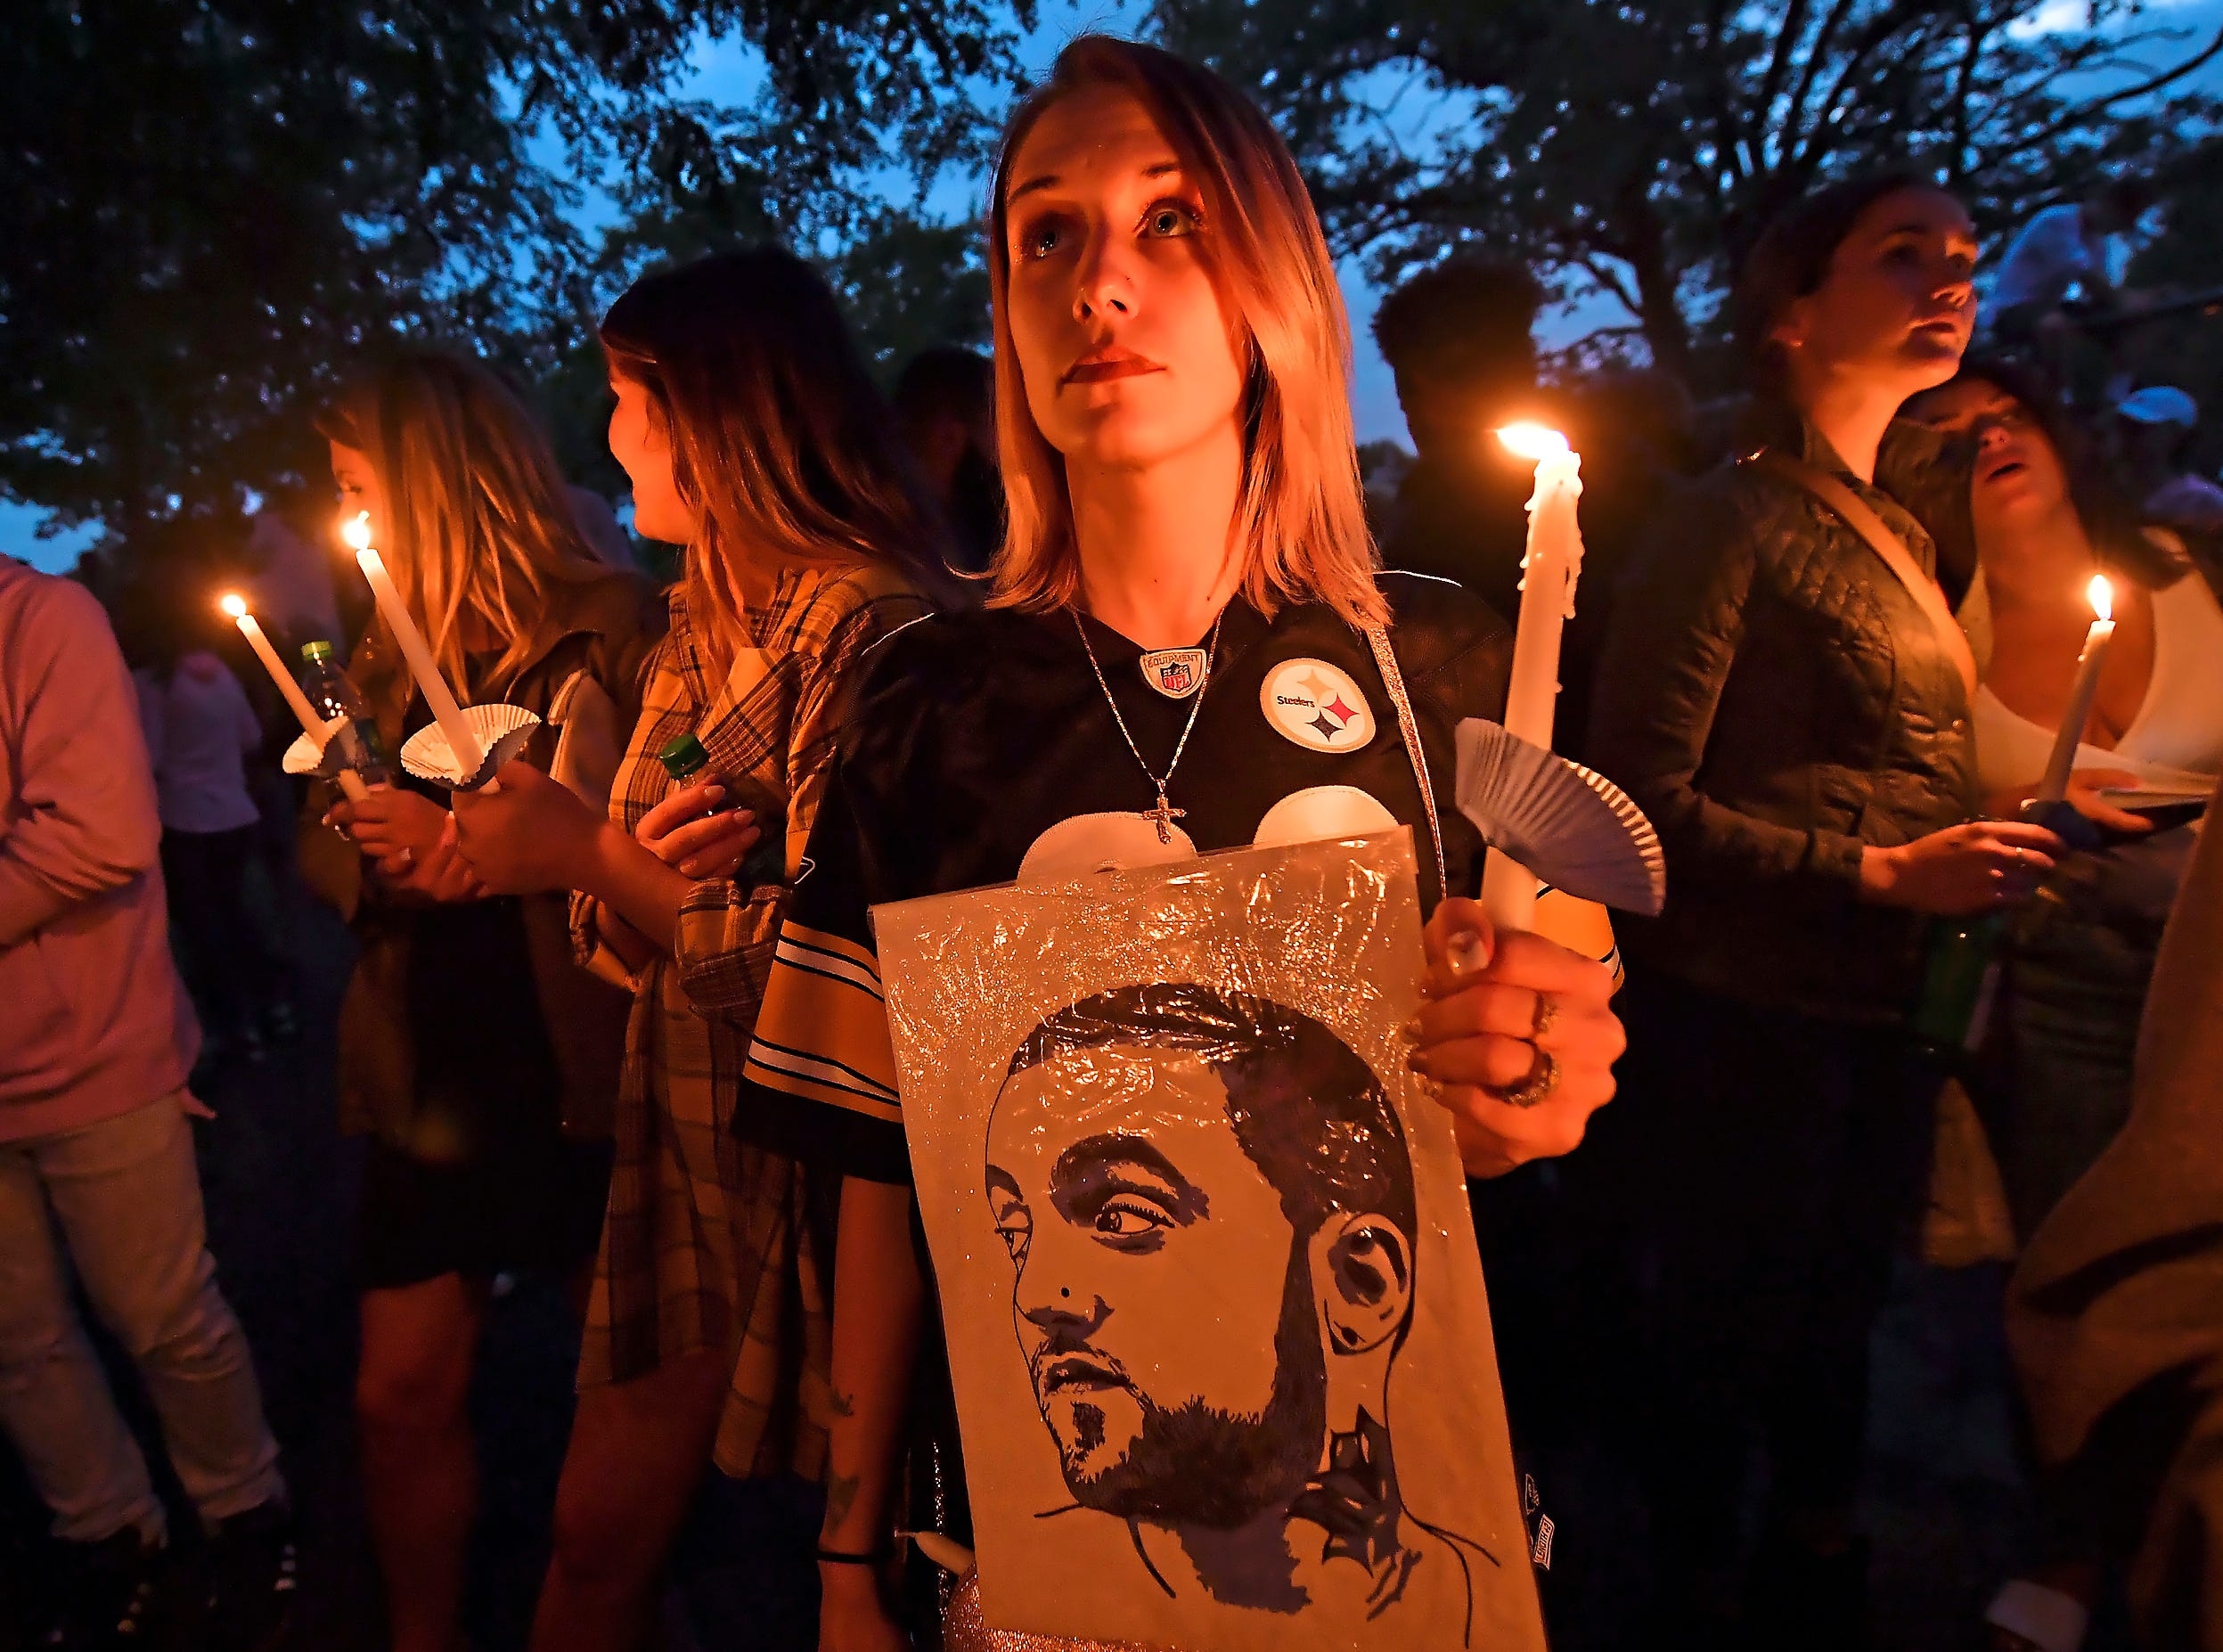 Andrea Grimm, 30, of the North Side neighborhood in Pittsburgh, holds a candle during a vigil for rapper Mac Miller Tuesday, Sept. 11, 2018, at Blue Slide Park in Pittsburgh, Pa. Blue Slide Park was the name of his debut studio album. He died last week in California. (Matt Freed/Post-Gazette via AP) ORG XMIT: PAPIT101